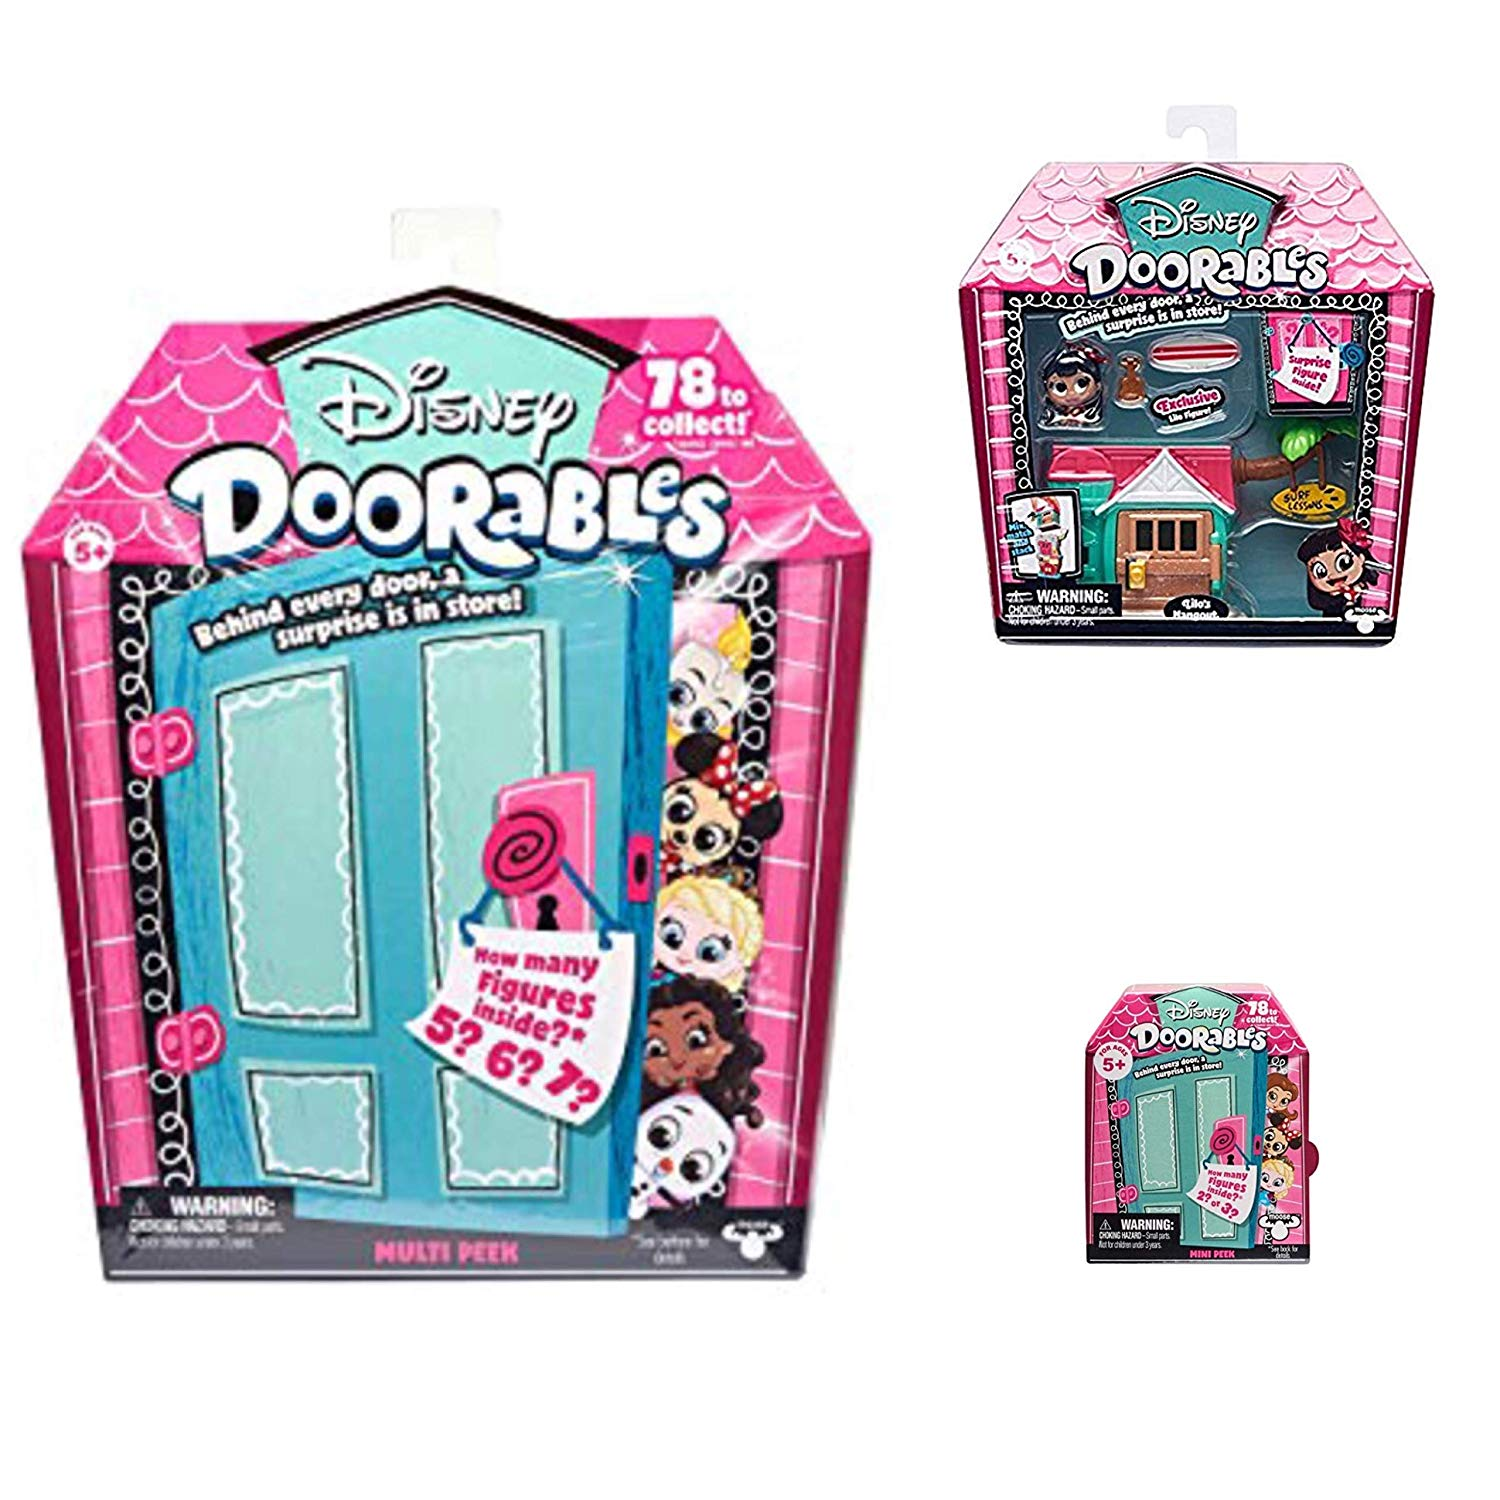 Disney Doorables Mini Stack Playset Lilo's Hangout, Multi Peek and Mini Peek Mystery Bundle